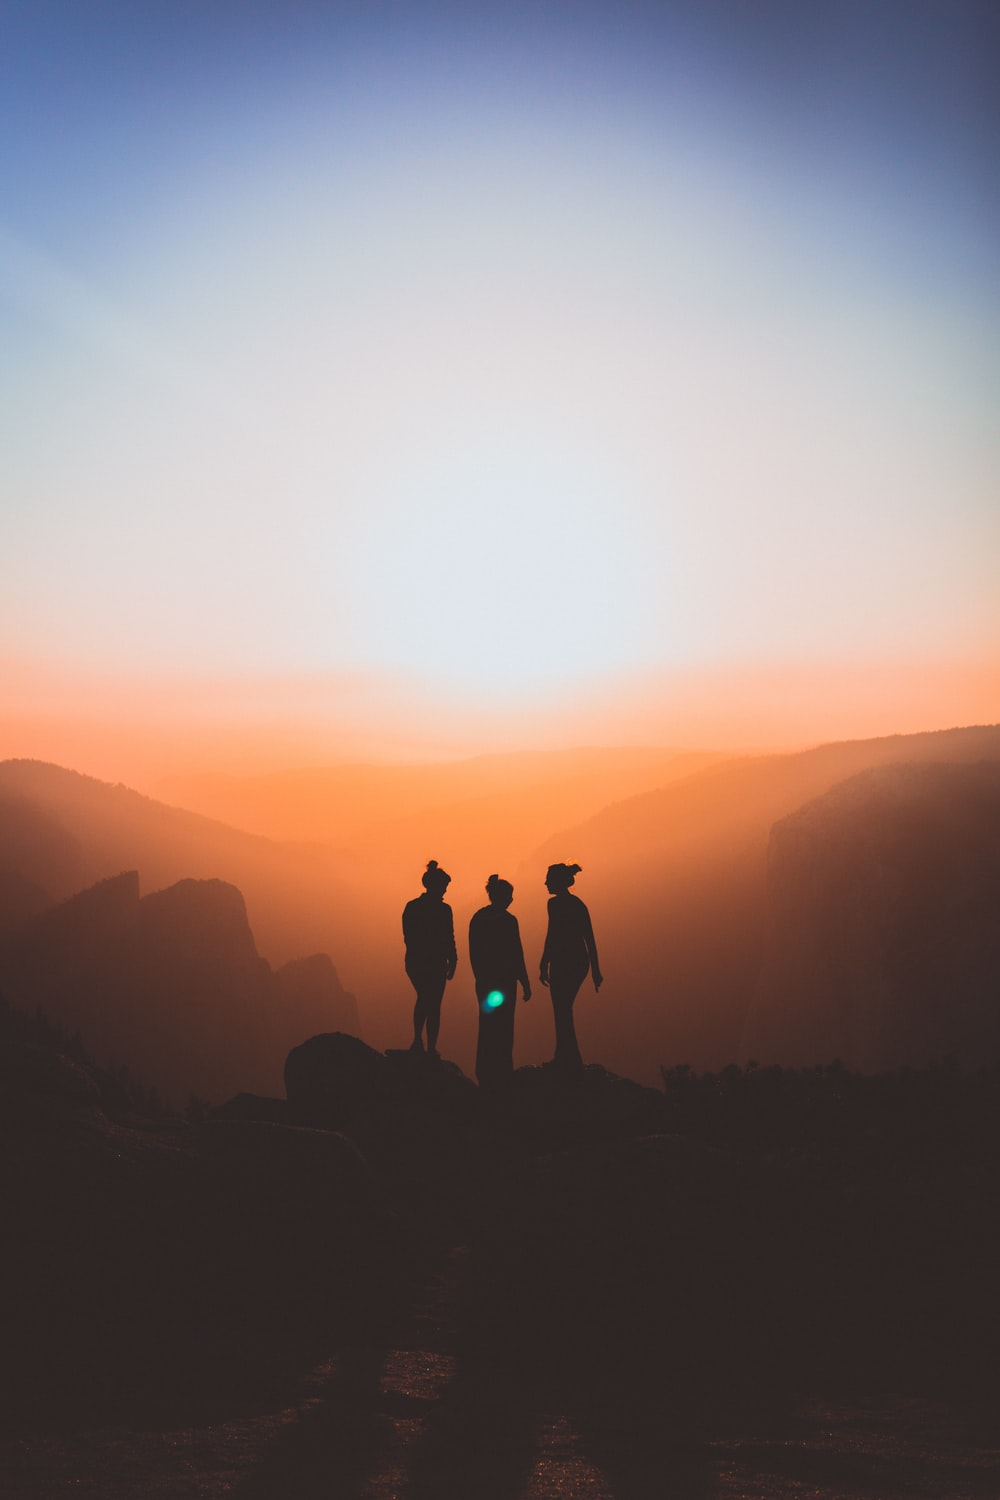 silhouette of three people up on mountain cliff